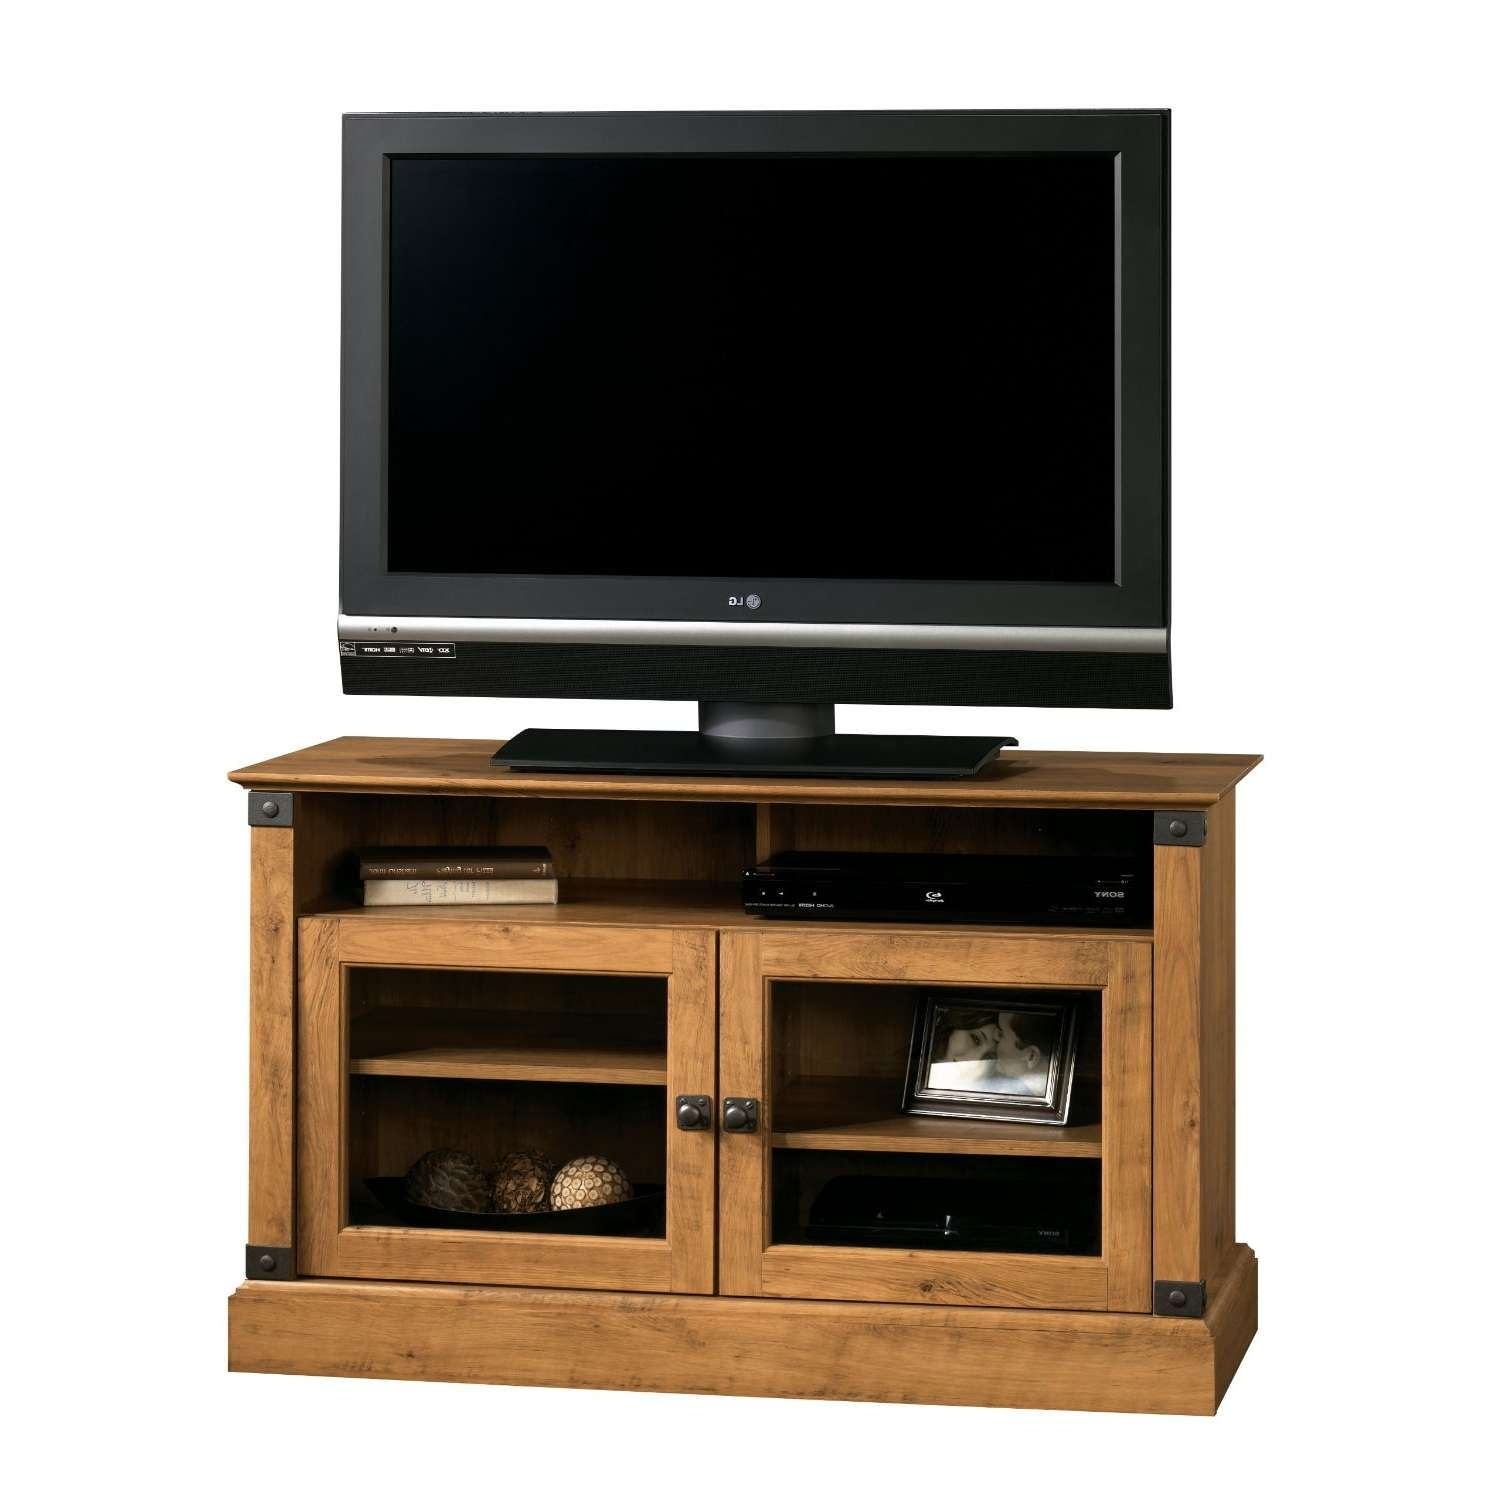 Furniture: Reclaimed Wood Tv Stand With Two Drawers And Shelves Throughout Wooden Tv Cabinets (View 12 of 20)